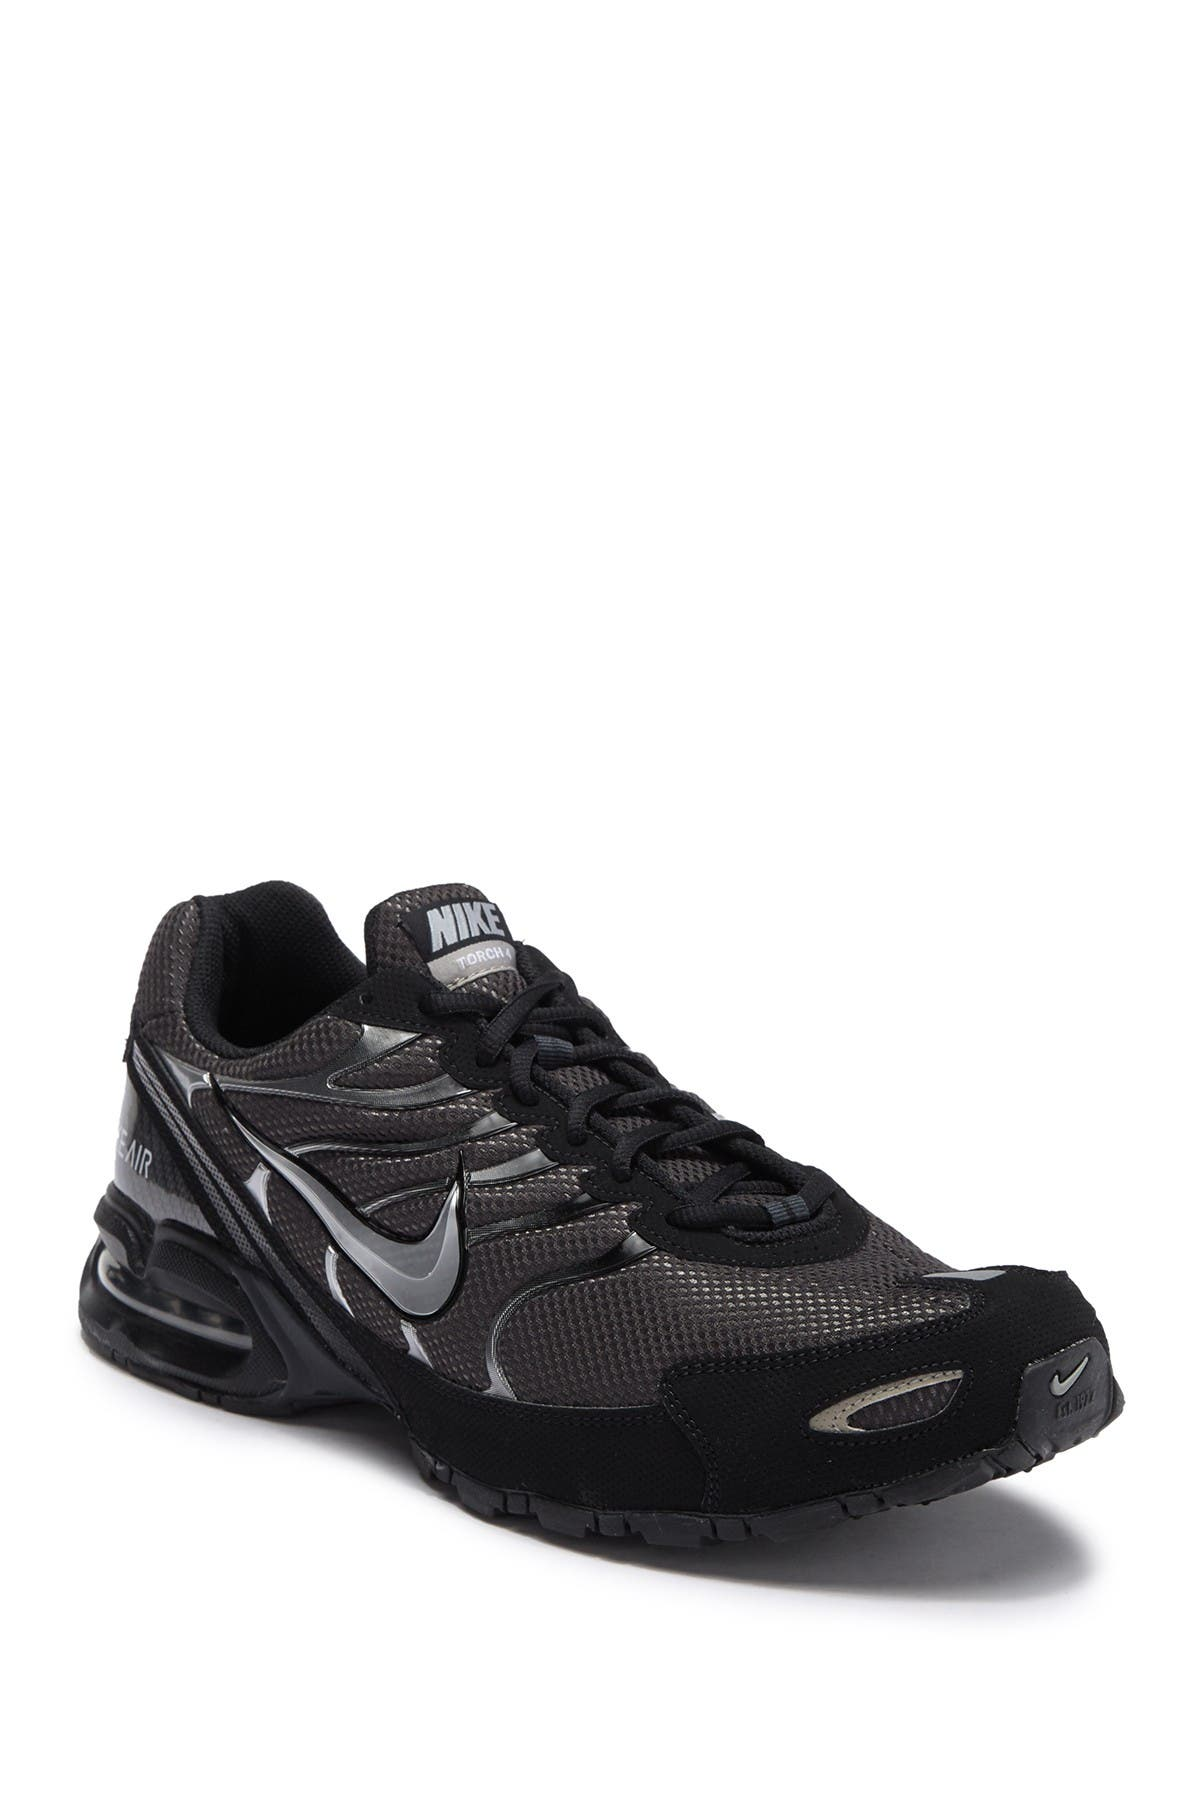 Image of Nike Air Max Torch 4 Running Shoe